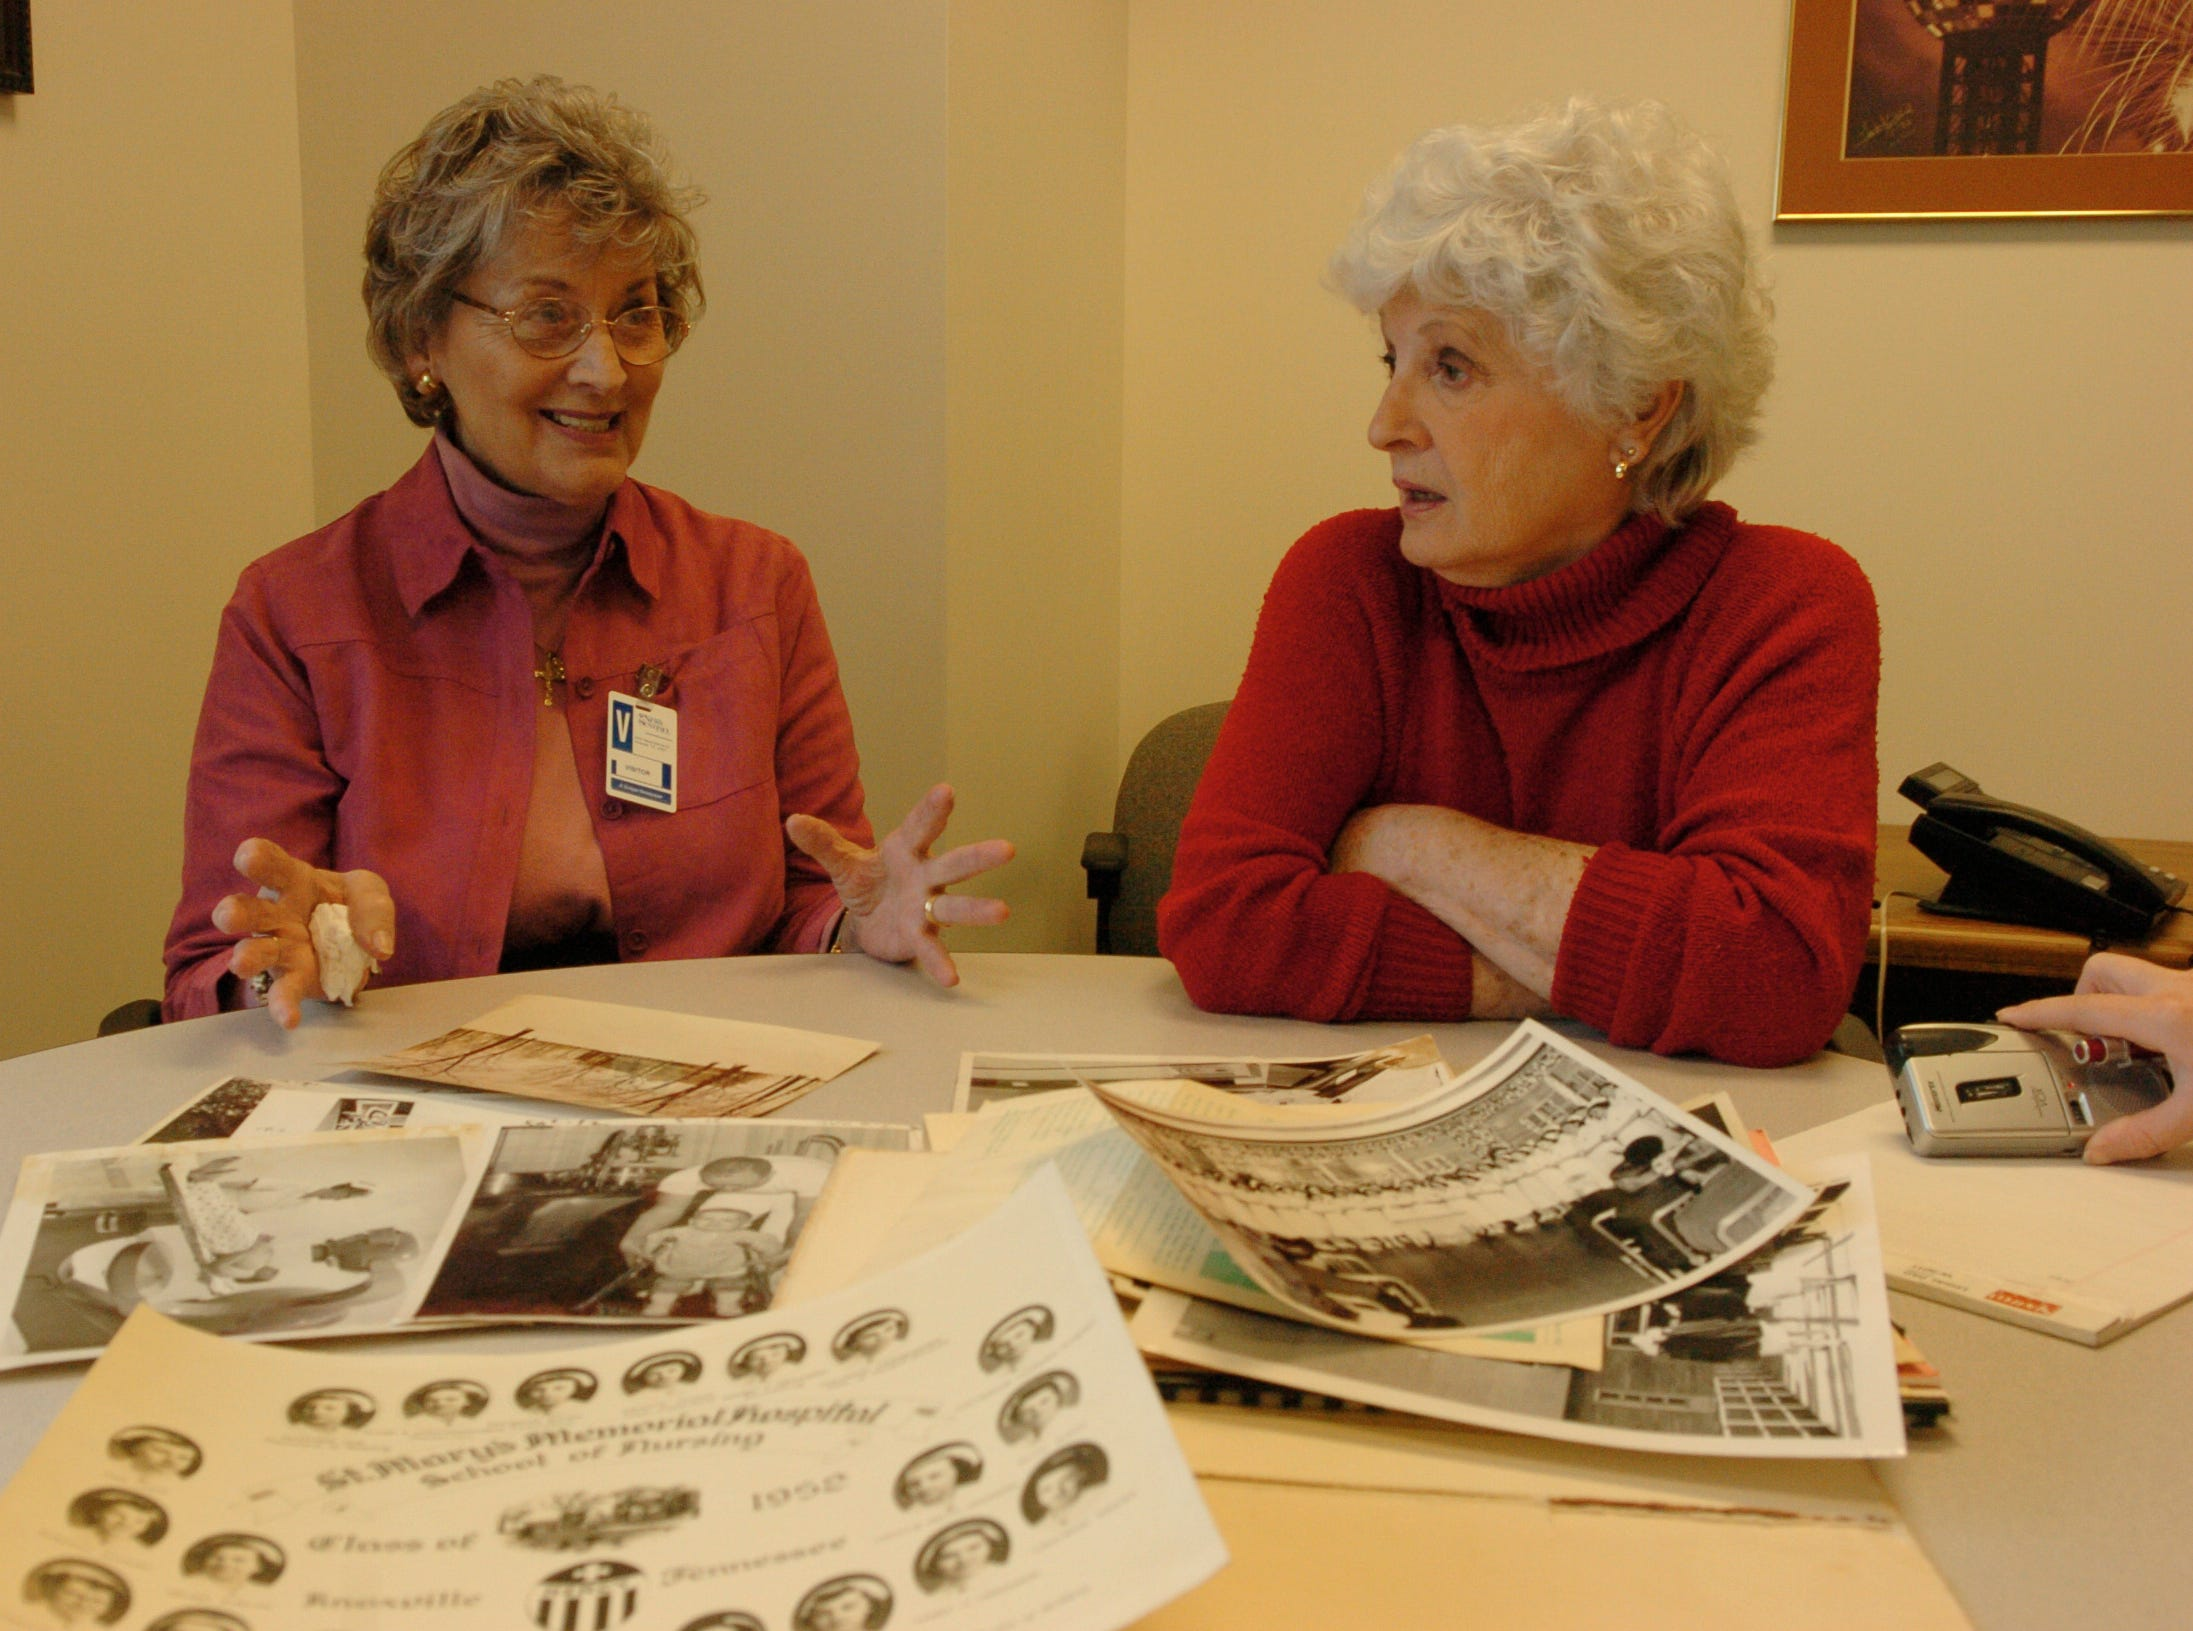 Frankie Hood (left ) Nancy Stephens look over photos from when they were in nursing school over 50 years ago.  Frankie Hood and Nancy Stephens graduated from St. Mary's nursing school in 1952.   Both women are still friends with each other and others in the class.